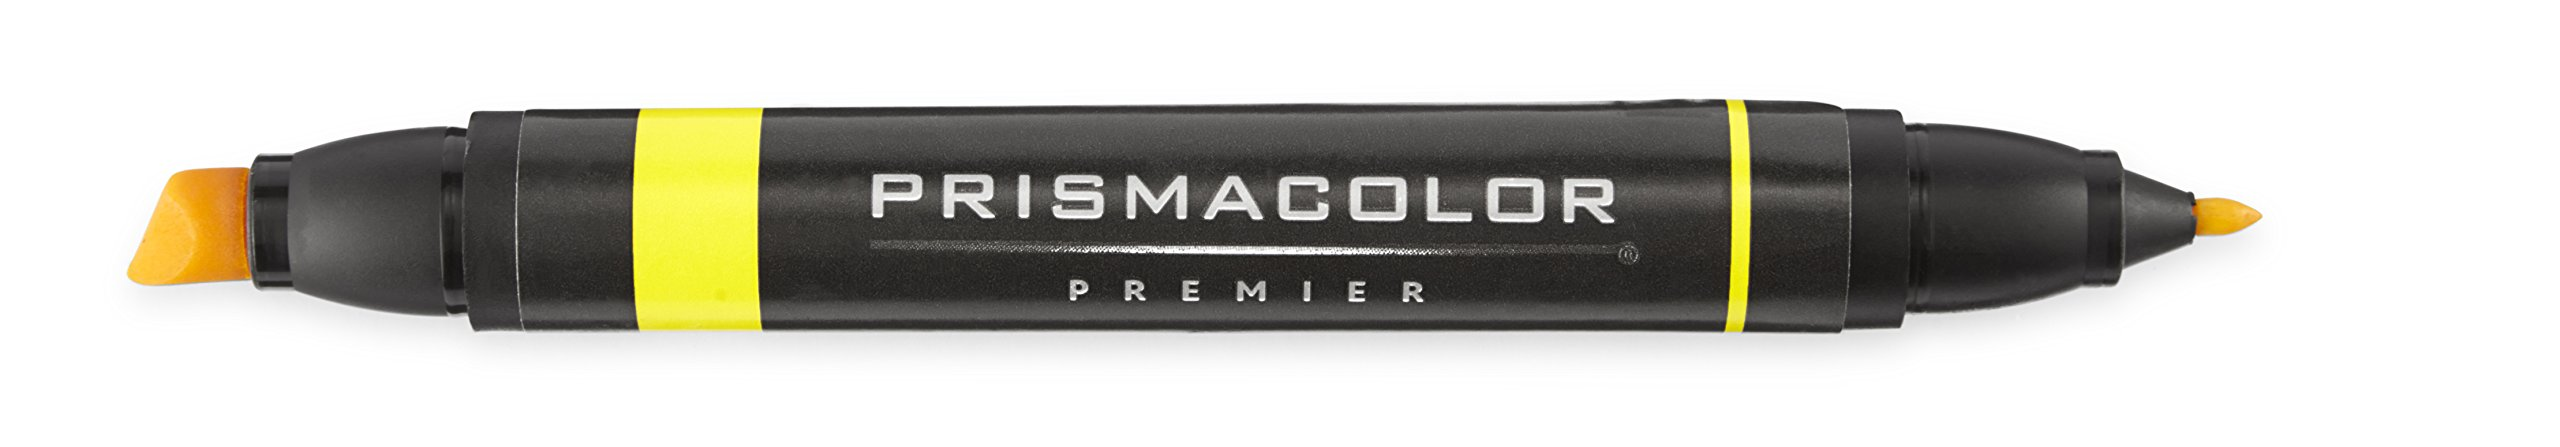 Prismacolor Premier Double-Ended Art Markers, Fine and Chisel Tip, 48-Count by Prismacolor (Image #12)